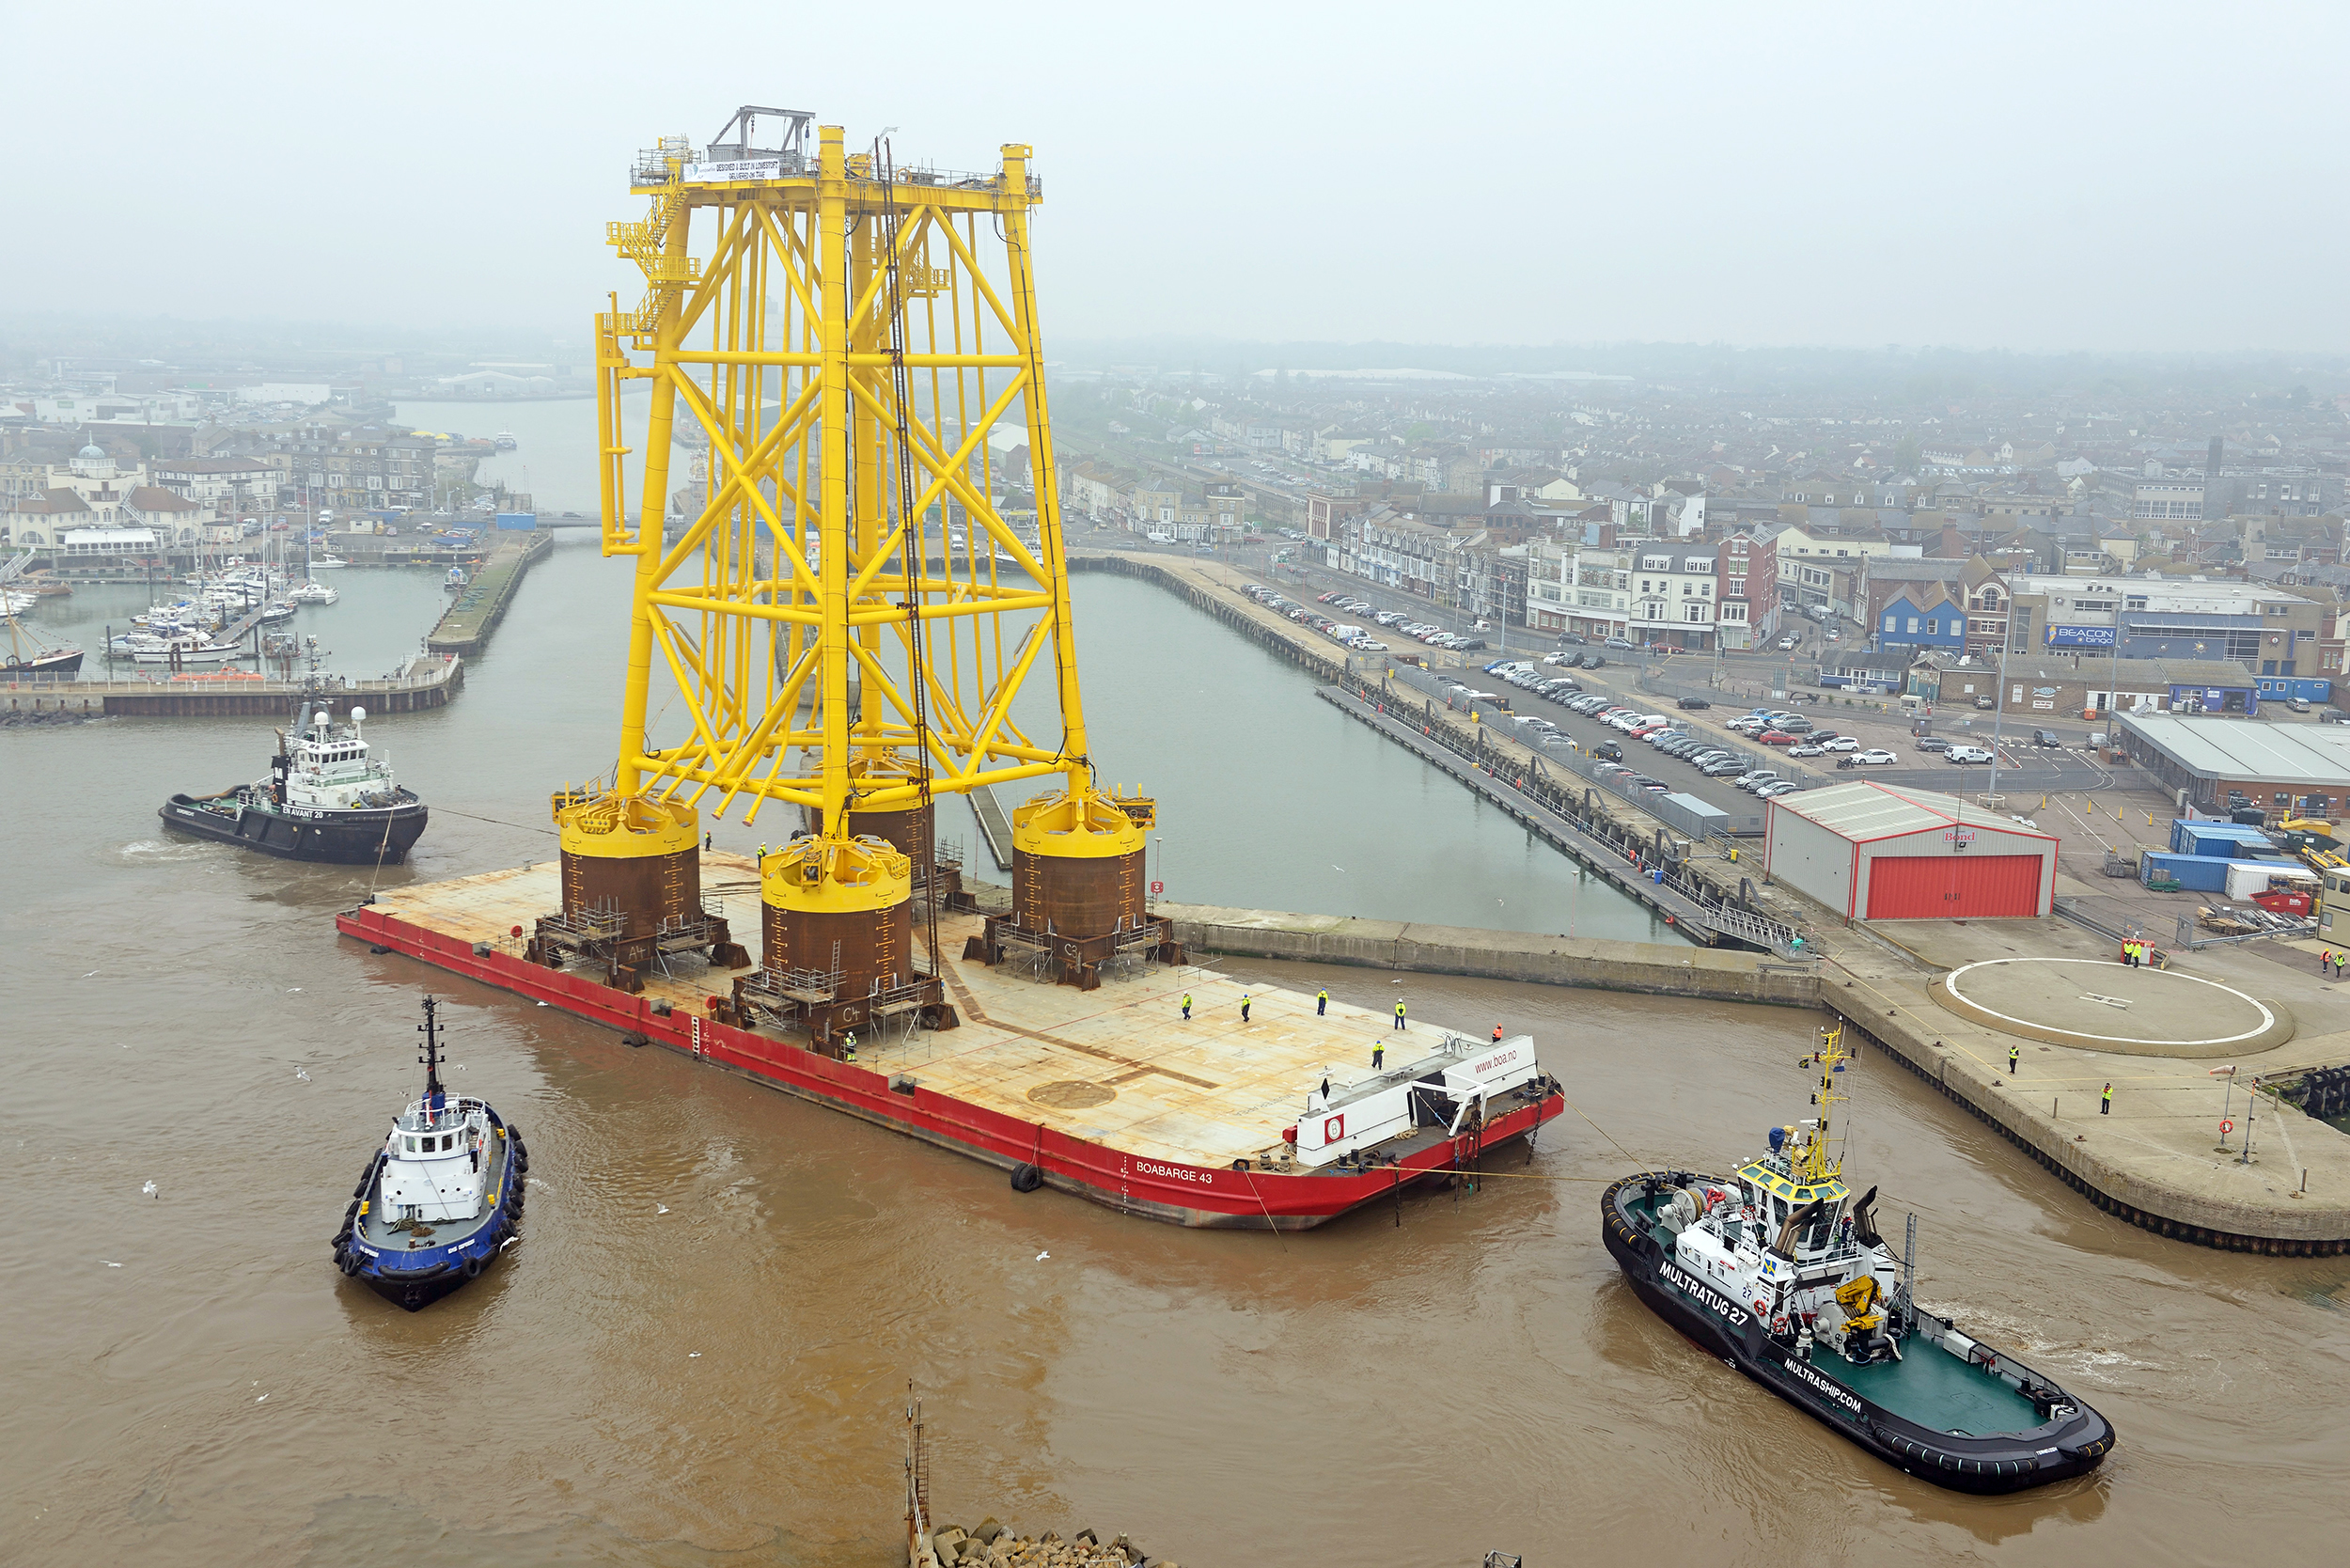 Dudgeon jacket leaves Lowestoft. Pic: www.chpv.co.uk